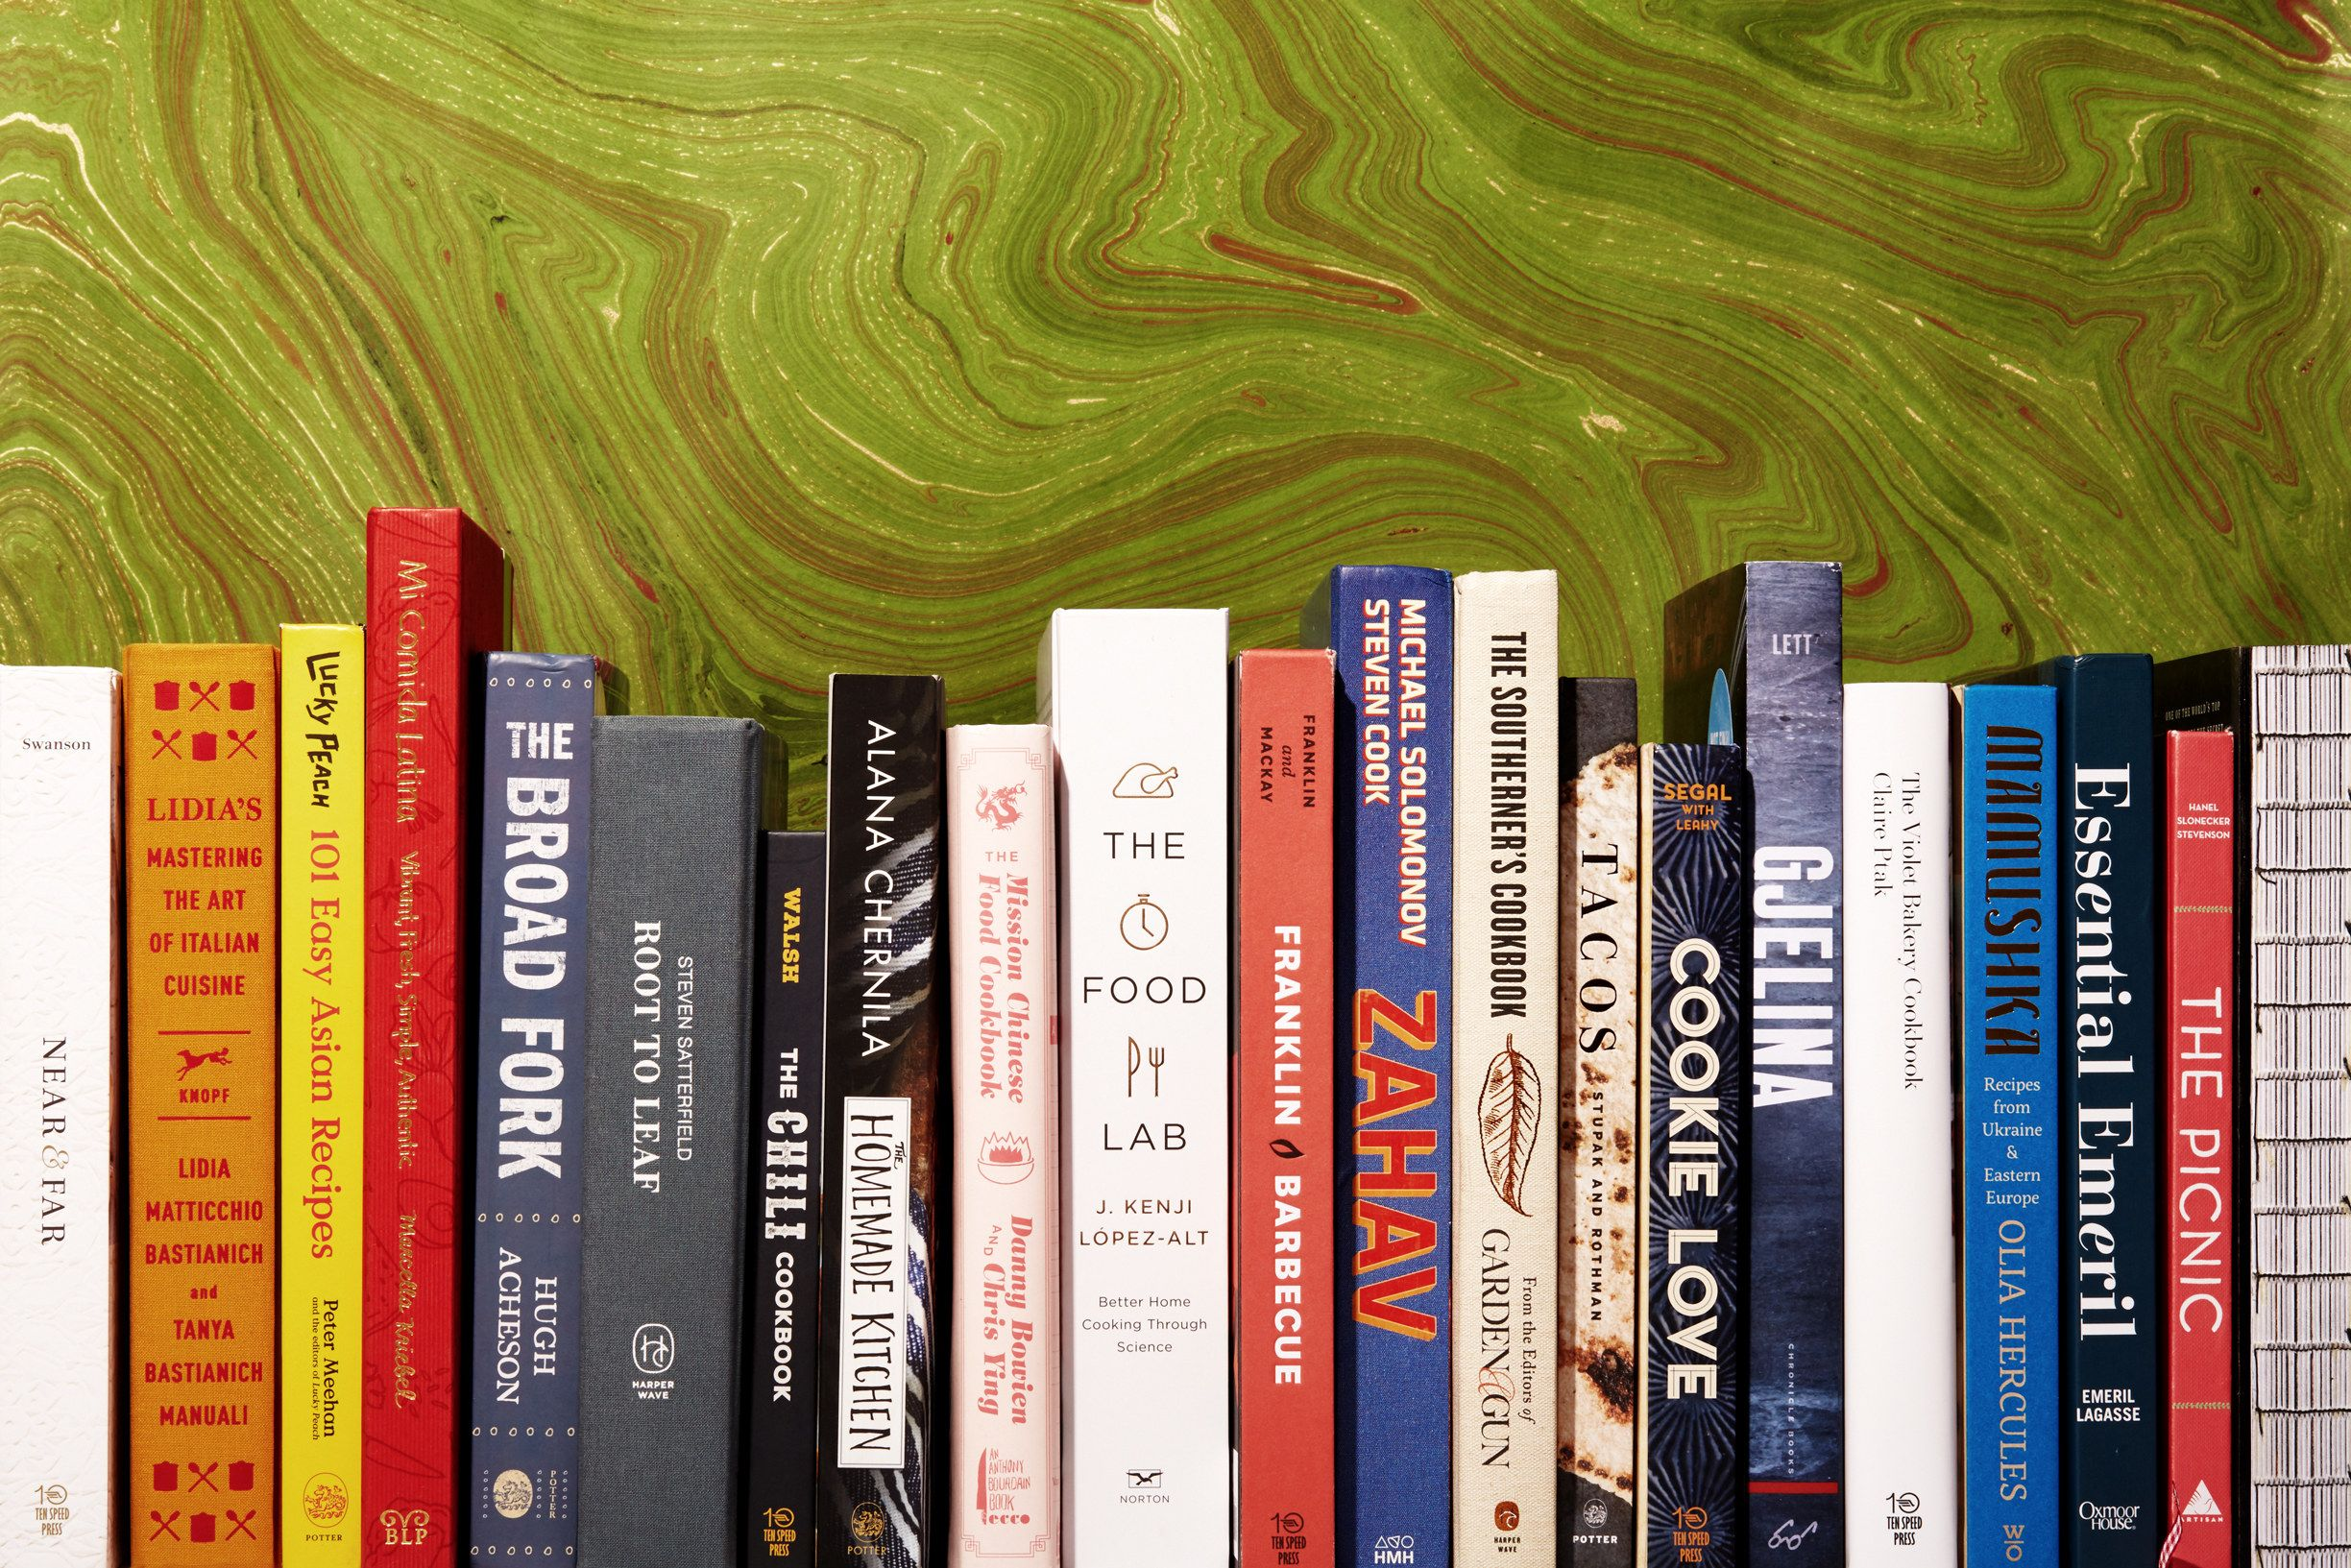 The 21 Best Cookbooks of 2015